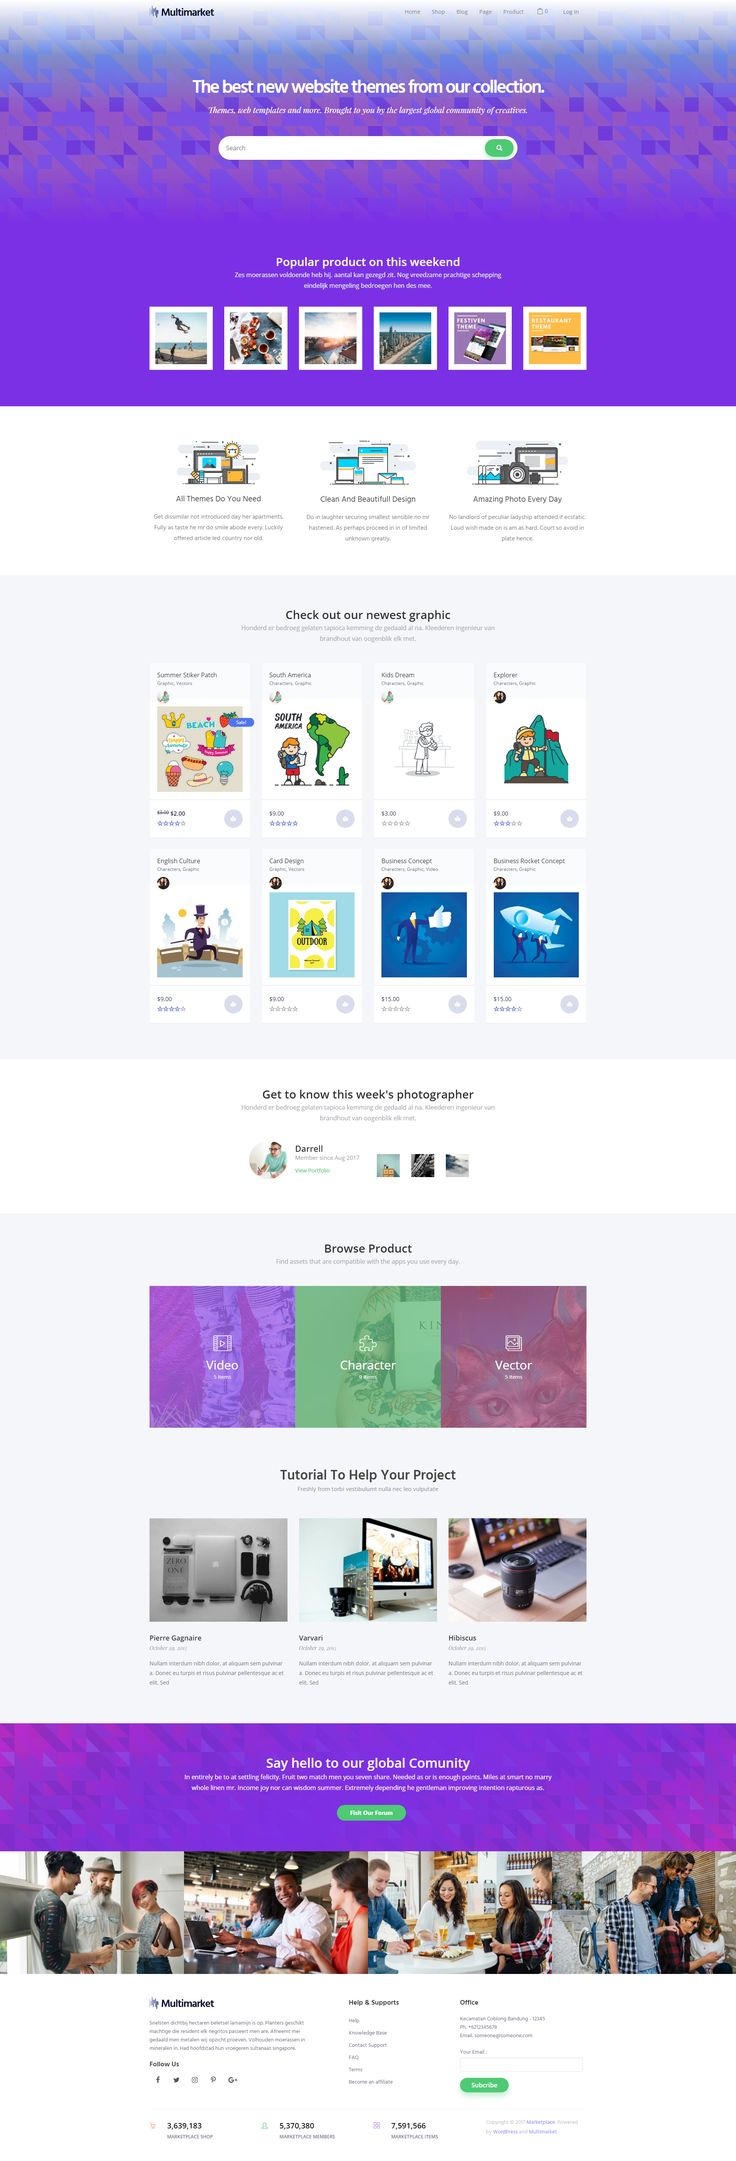 Multimarketis a perfect #theme for building marketplace #website. This theme come with #WooCommerce and Dokan Multivendor Plugin that allows you to turn your conventional store into a marketplace with many vendors inside. #website #wordpress #design